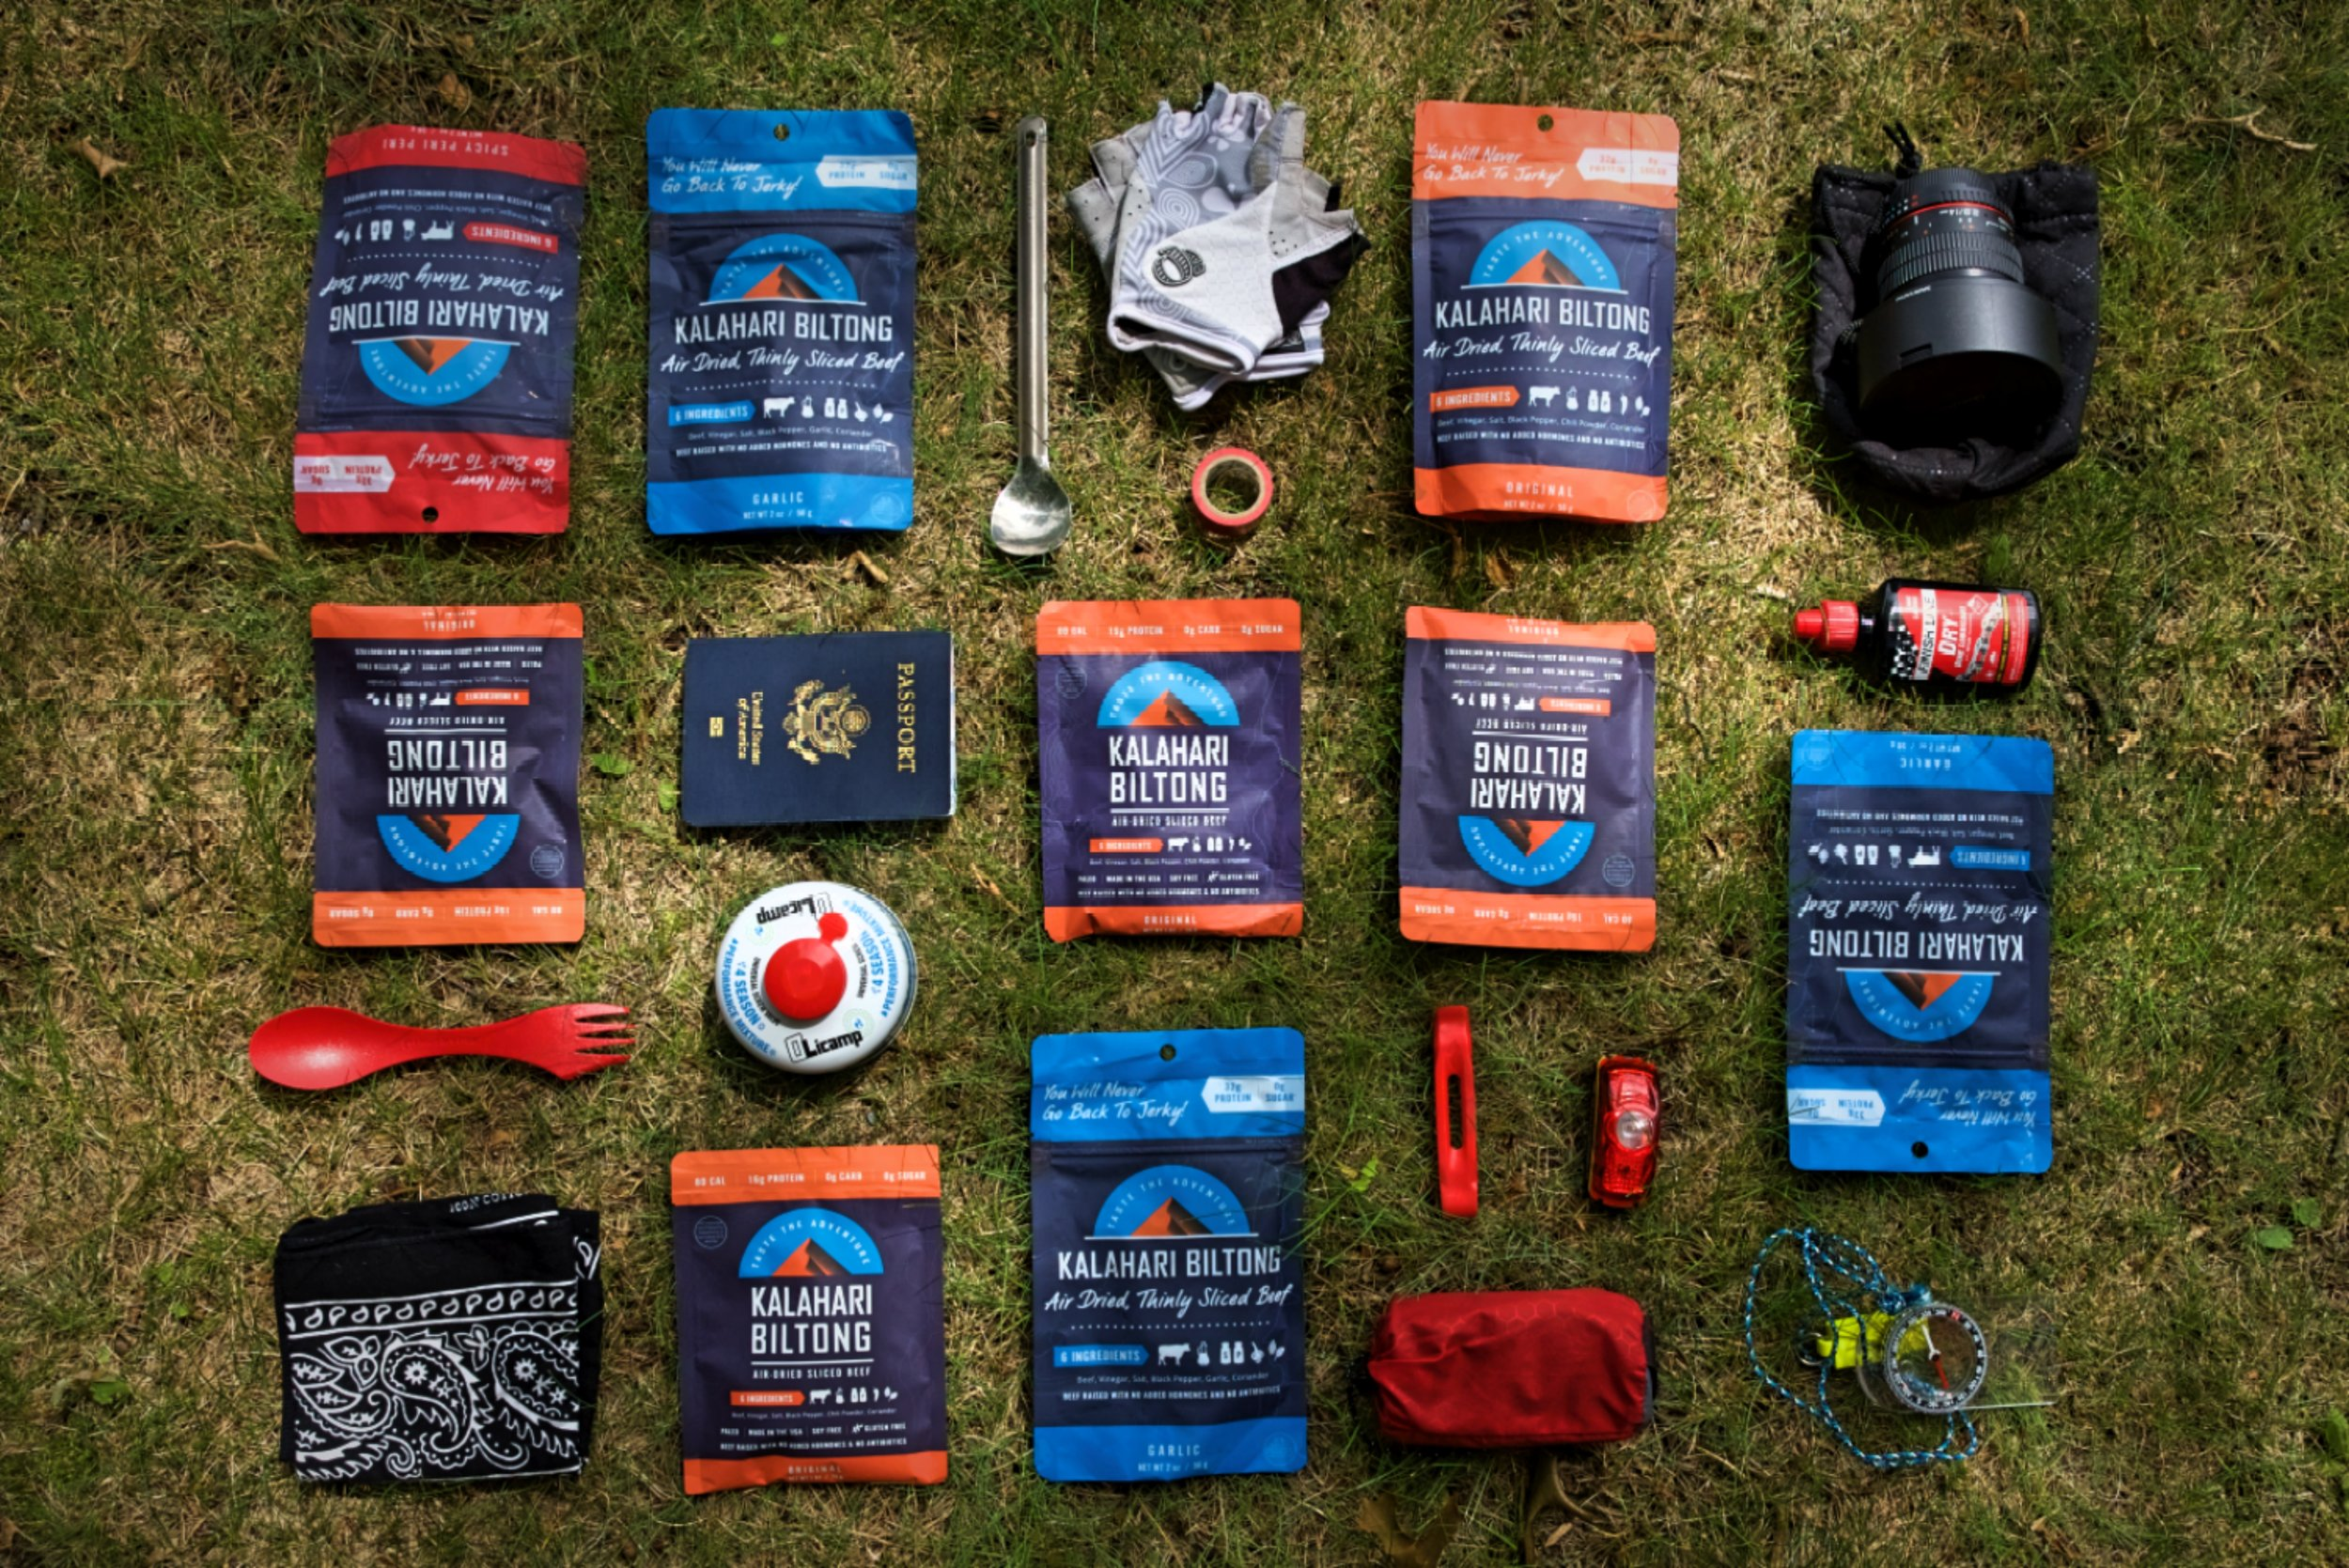 Not eating enough protein on a long-distance expedition can suppress your immune system and lengthen the amount of time to recover. A high protein food like biltong will keep you going strong.